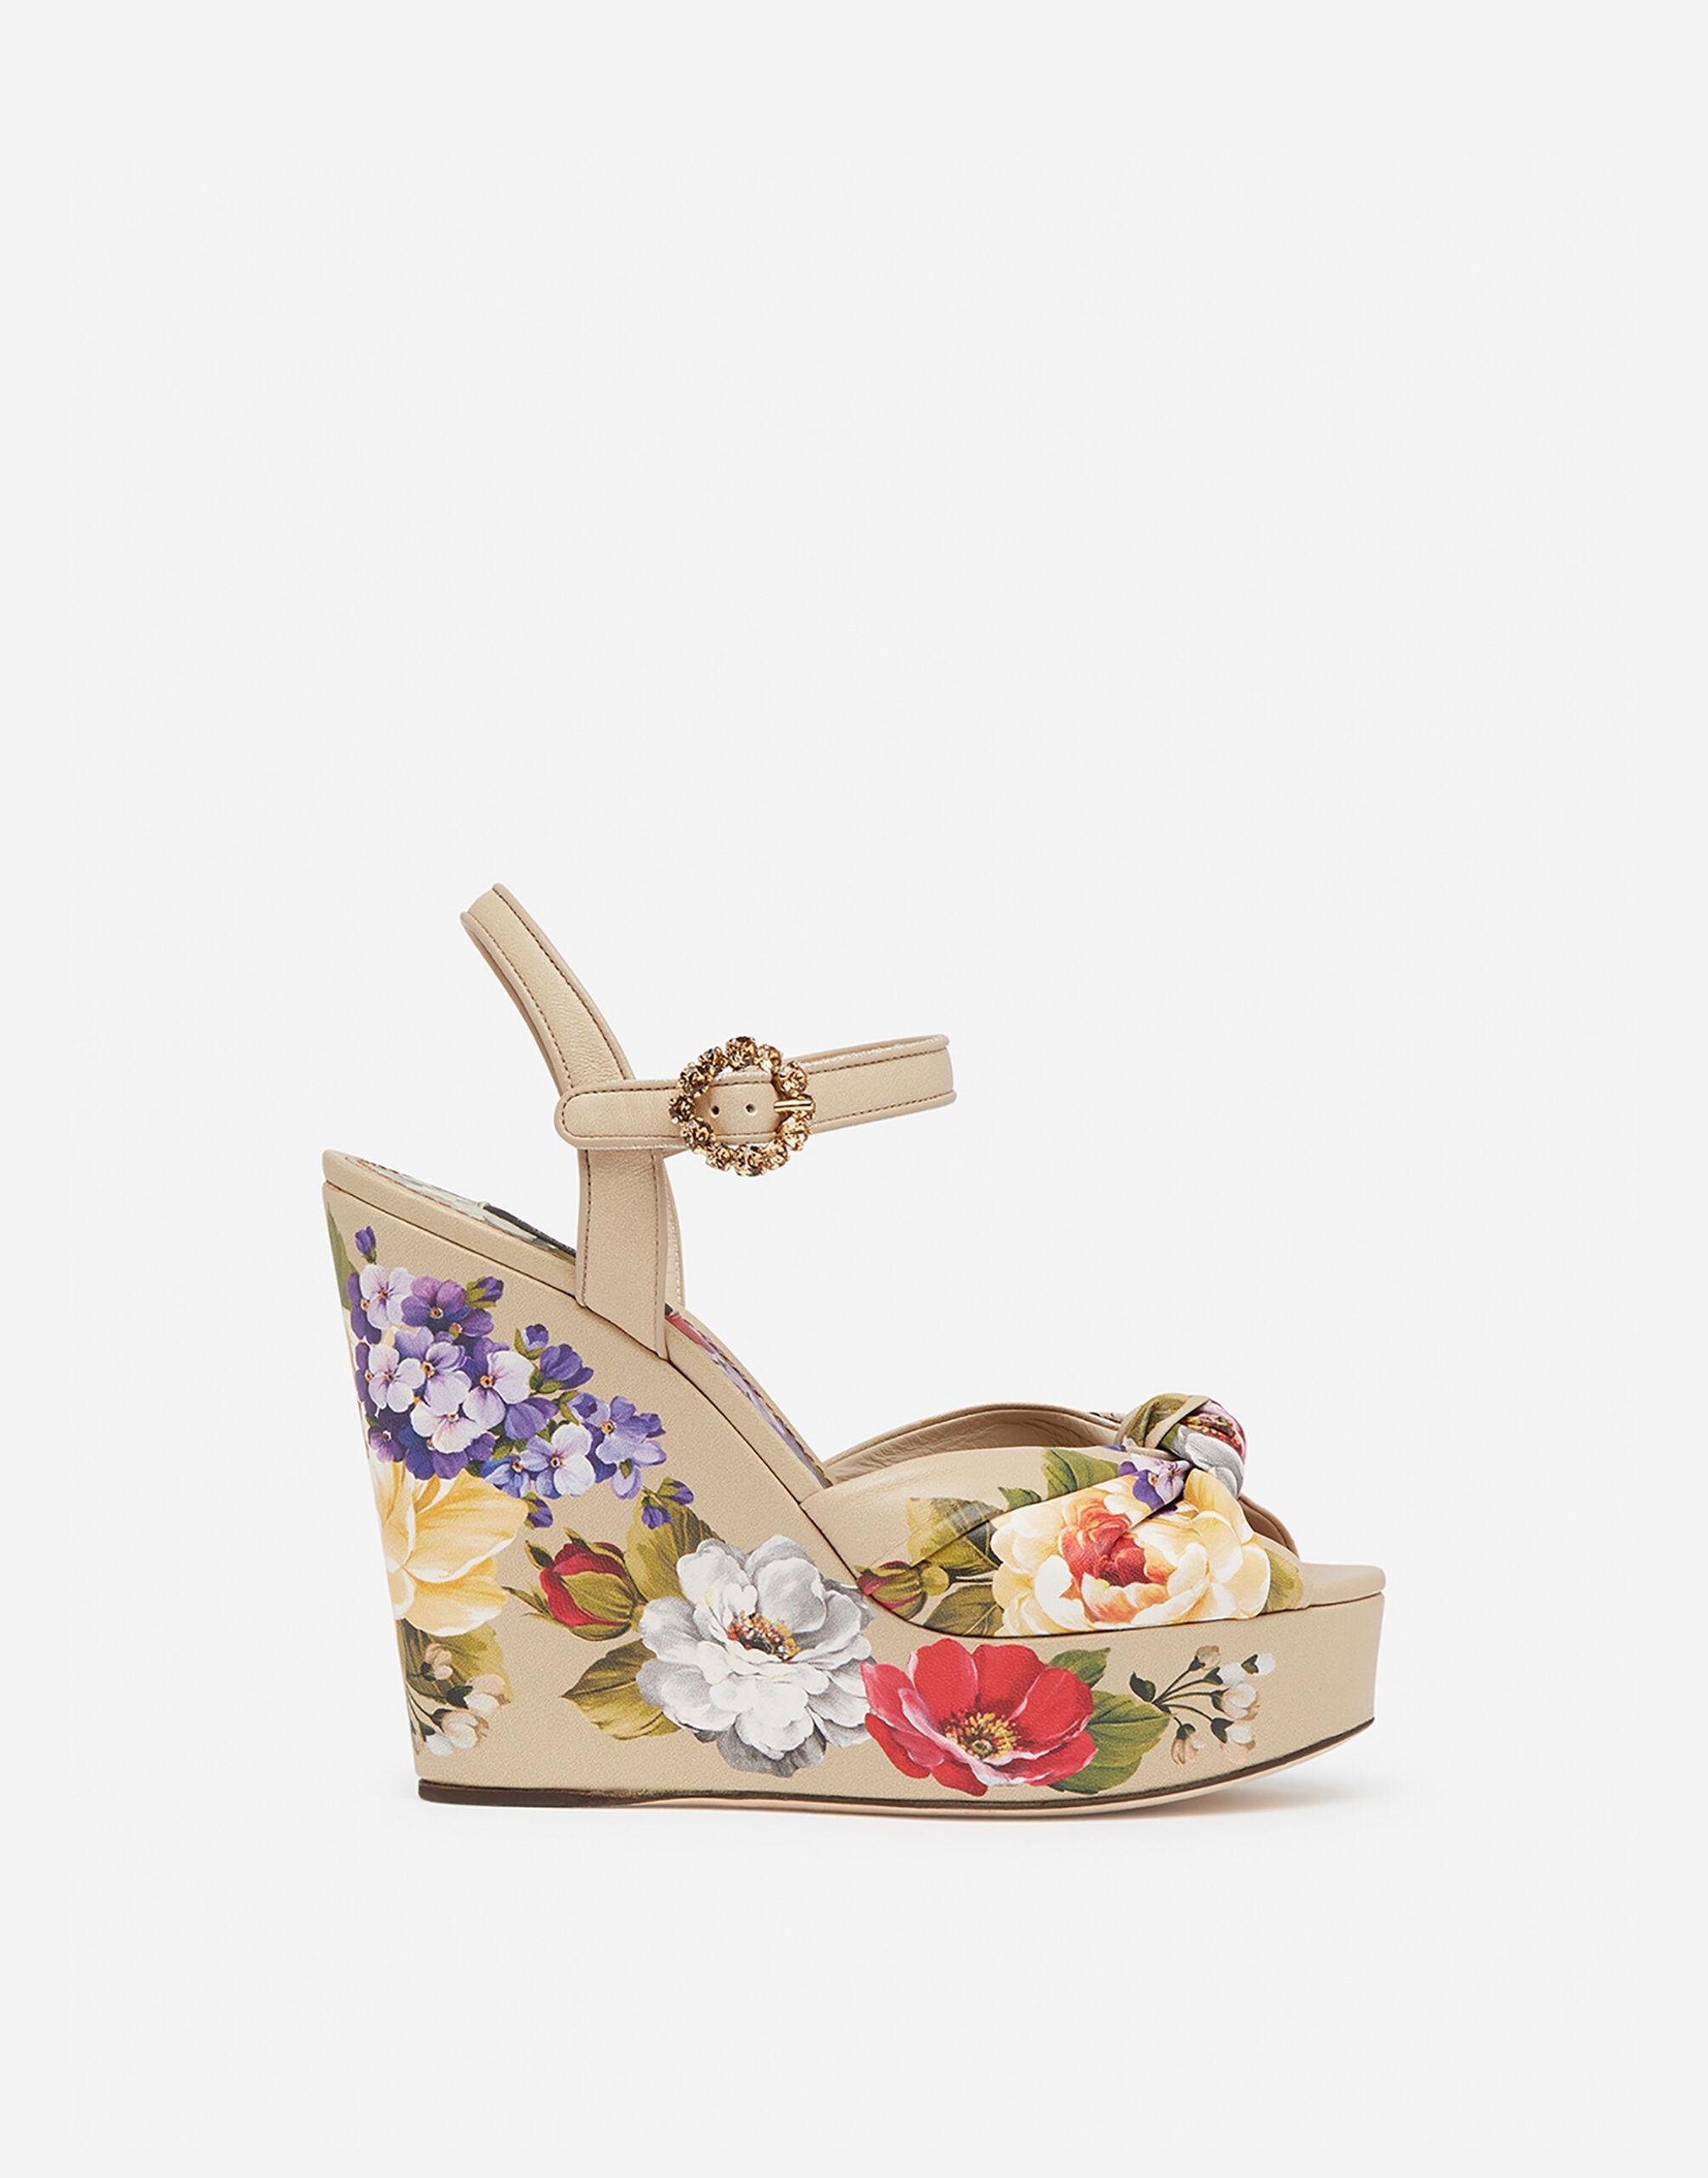 Nappa leather wedge sandals with floral print